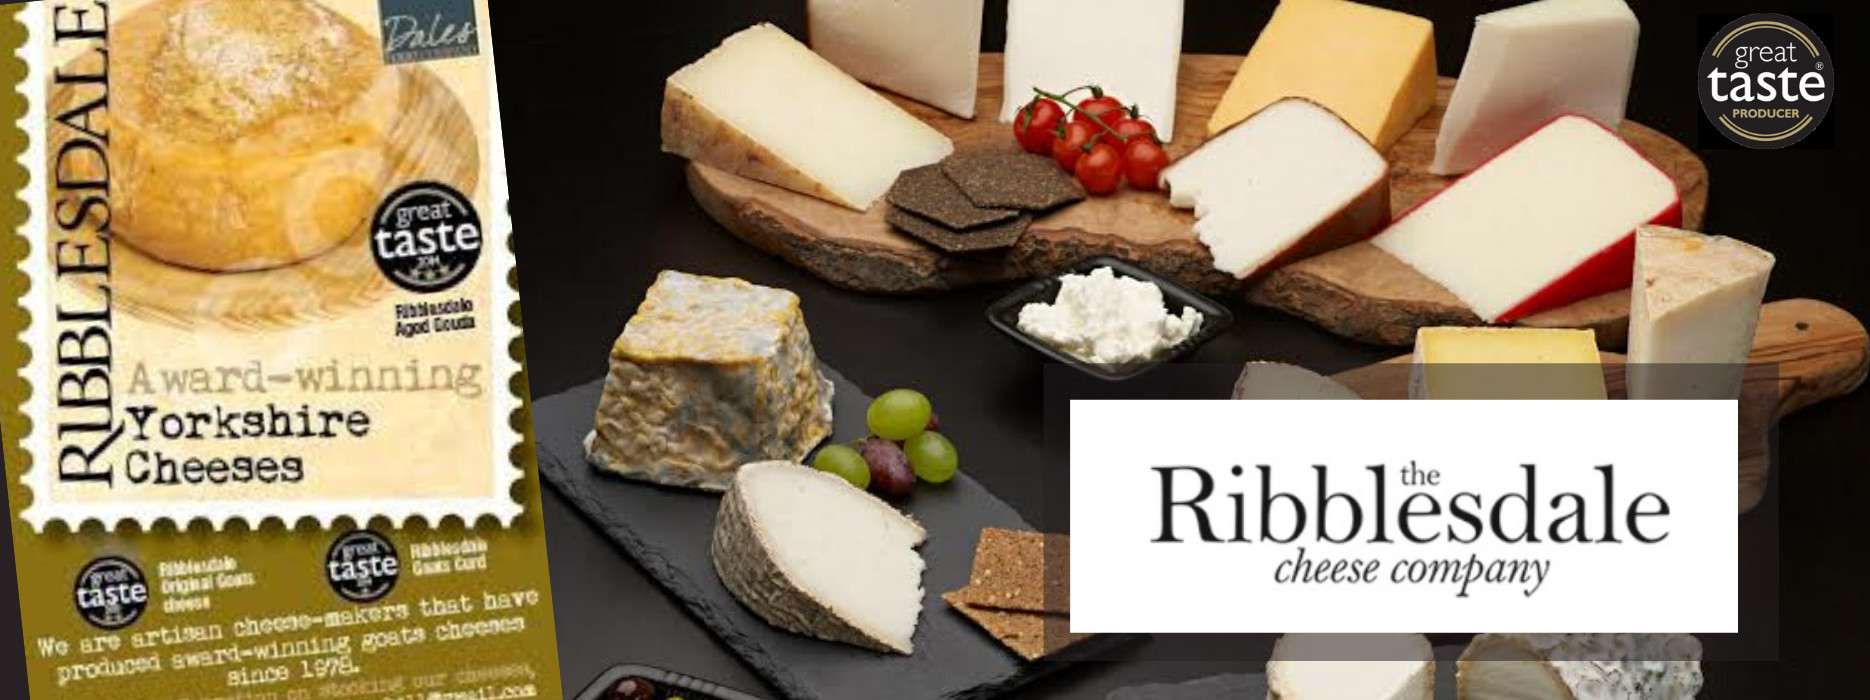 Ribblesdale Cheese - Award Winning Goat/Sheep Cheese